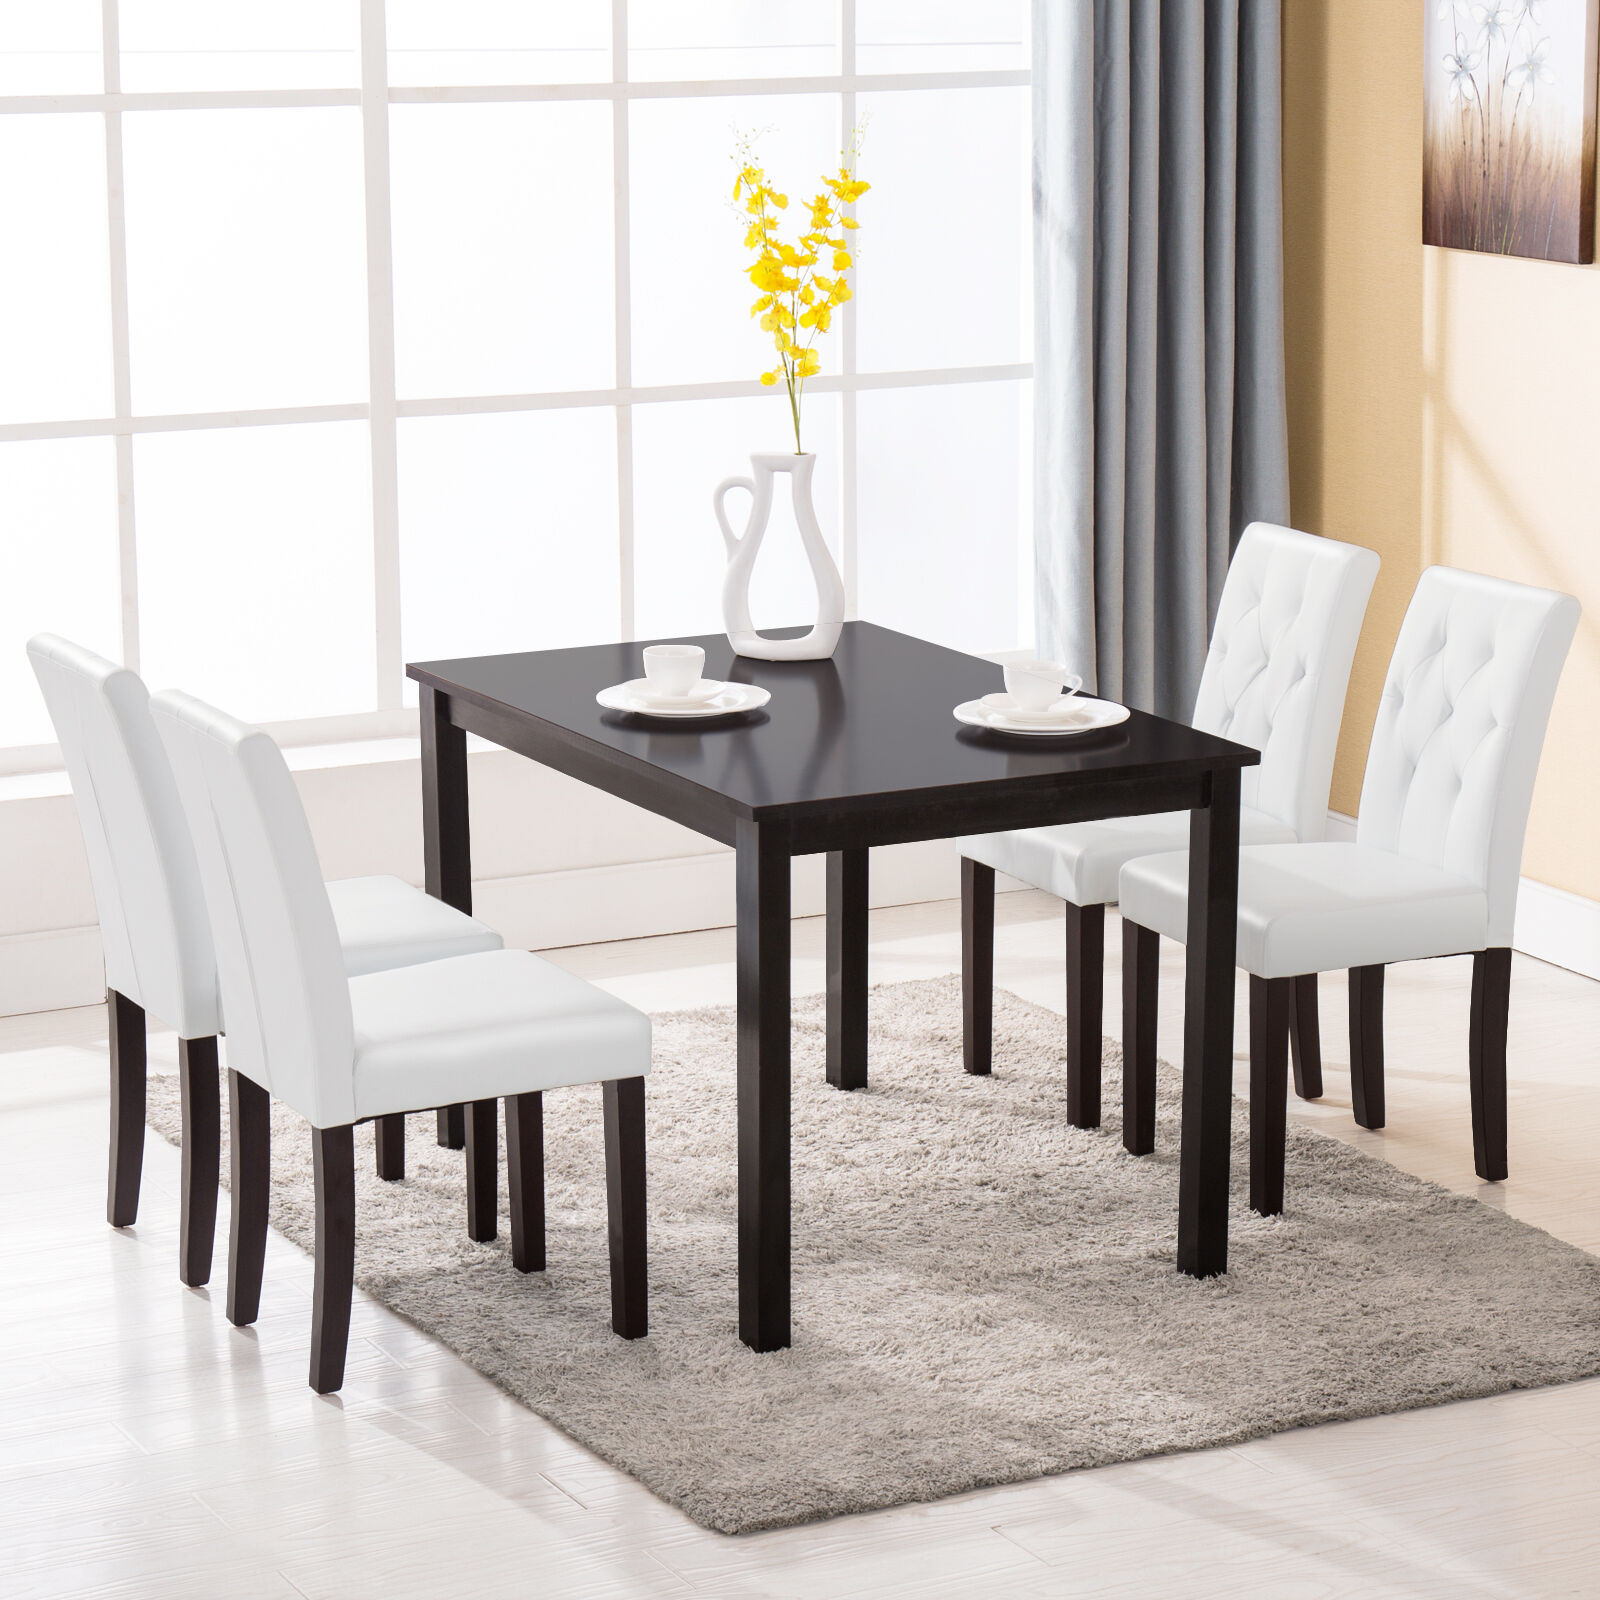 5 Piece Dining Table Set 4 Chairs Room Kitchen Dinette Breakfast Wood Furniture  eBay